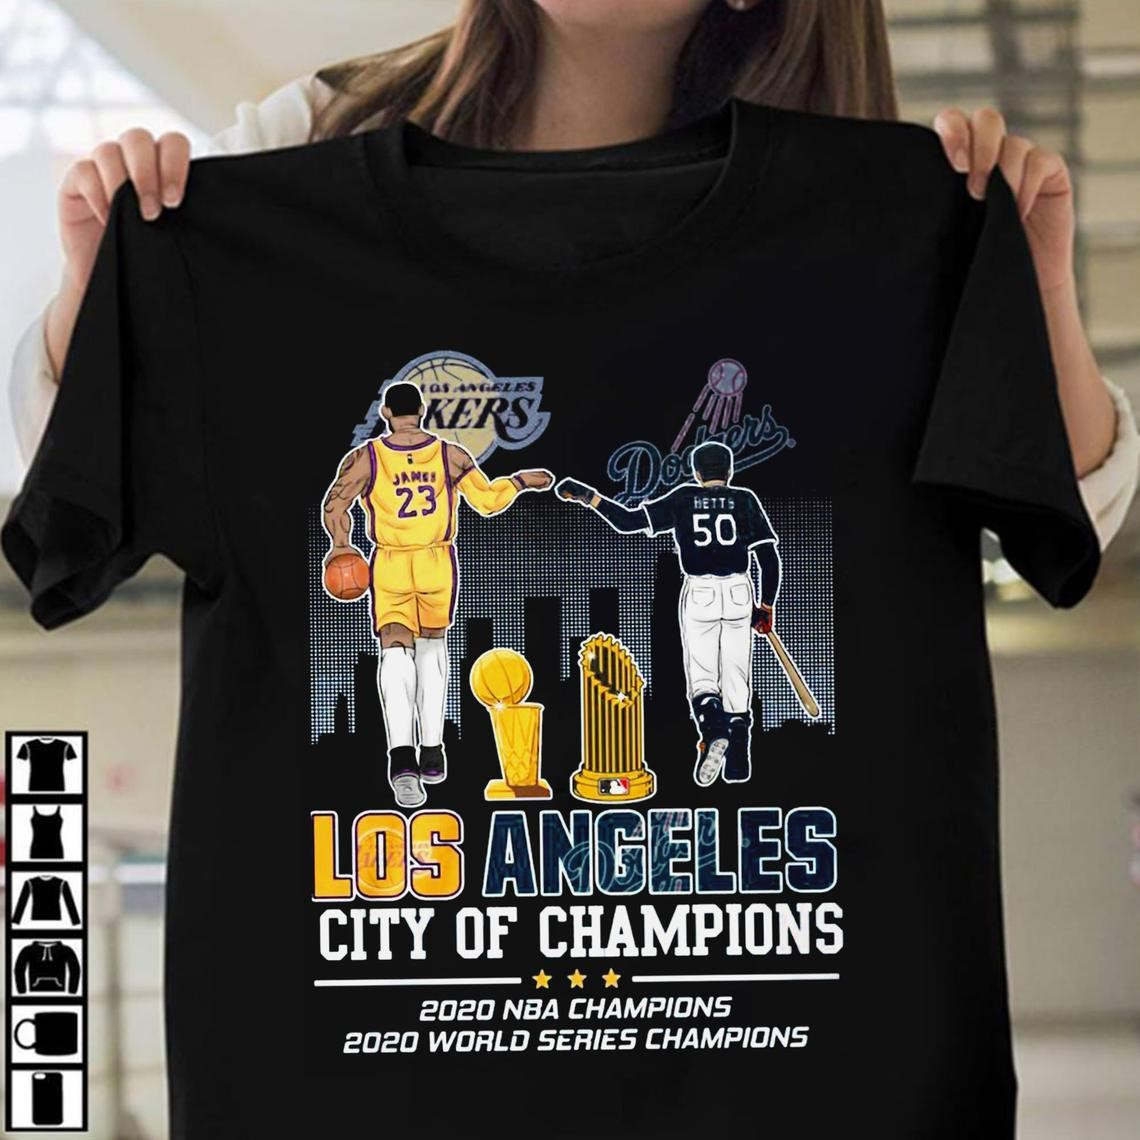 Lakers James And Dodgers Betts Los Angeles City Of Champions 2020 Nba Champions 2020 World Series Champions Shirt